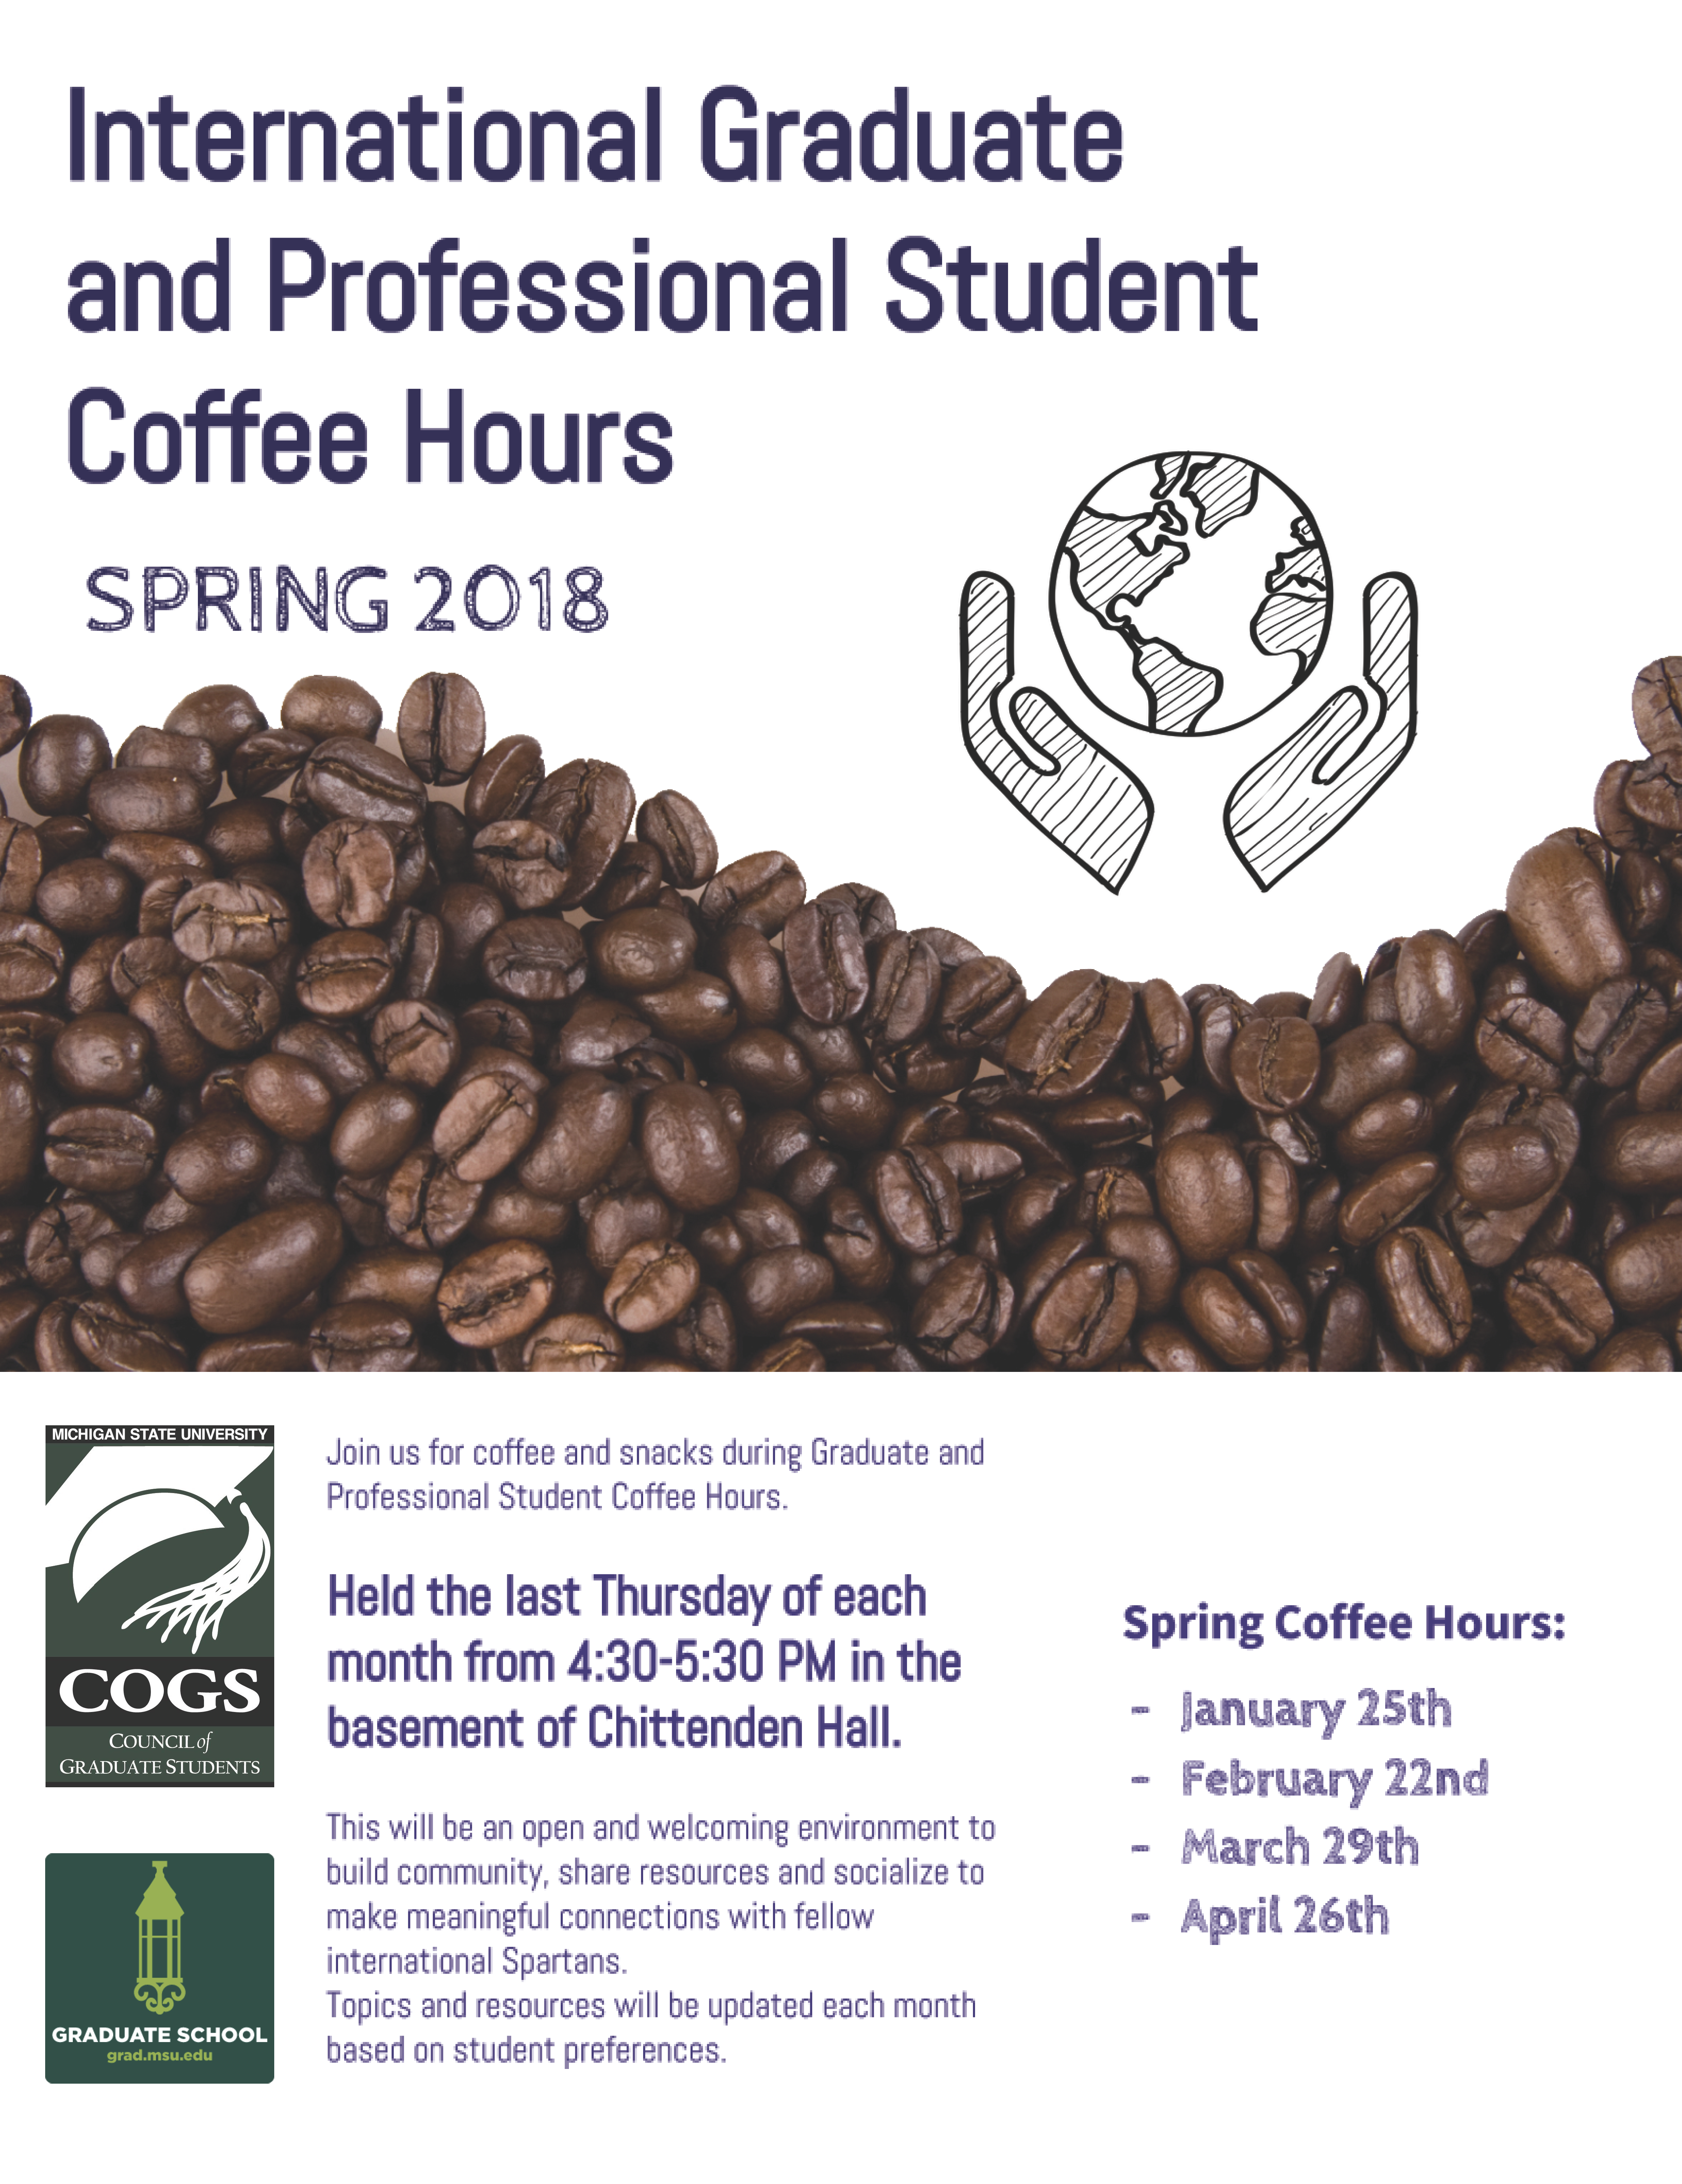 COGS Spring 2018 Coffee Hours